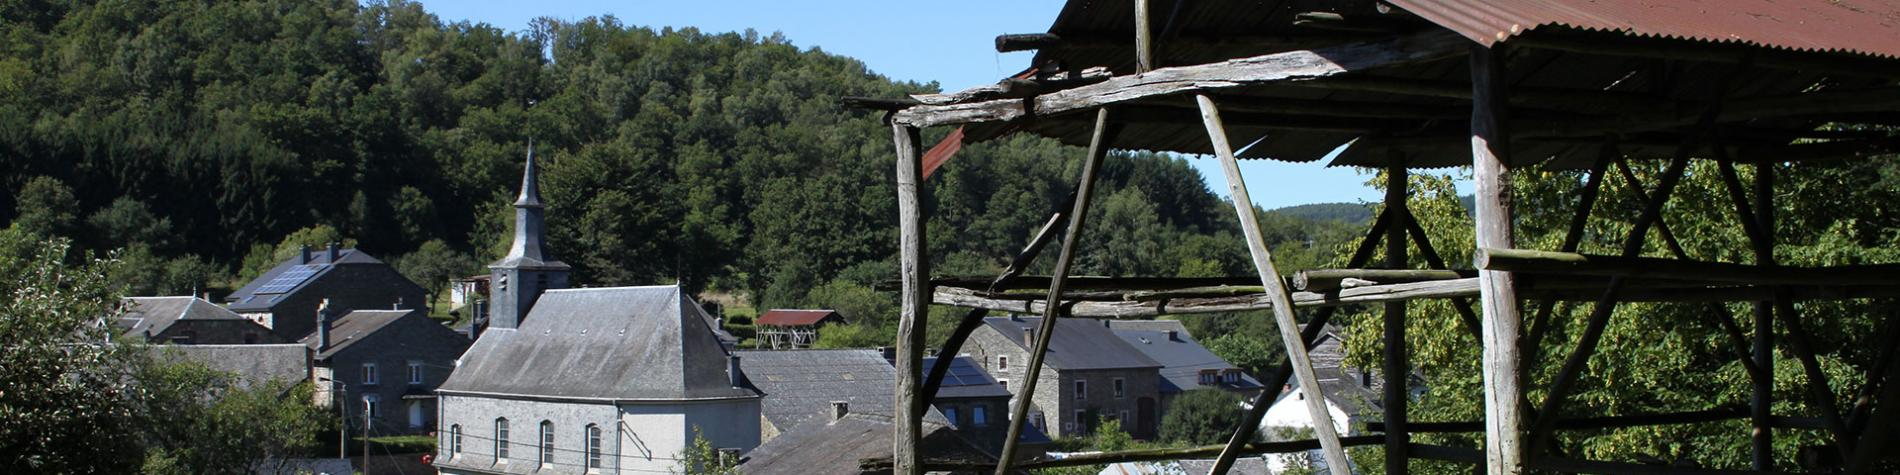 Les plus beaux villages de Wallonie - Laforêt